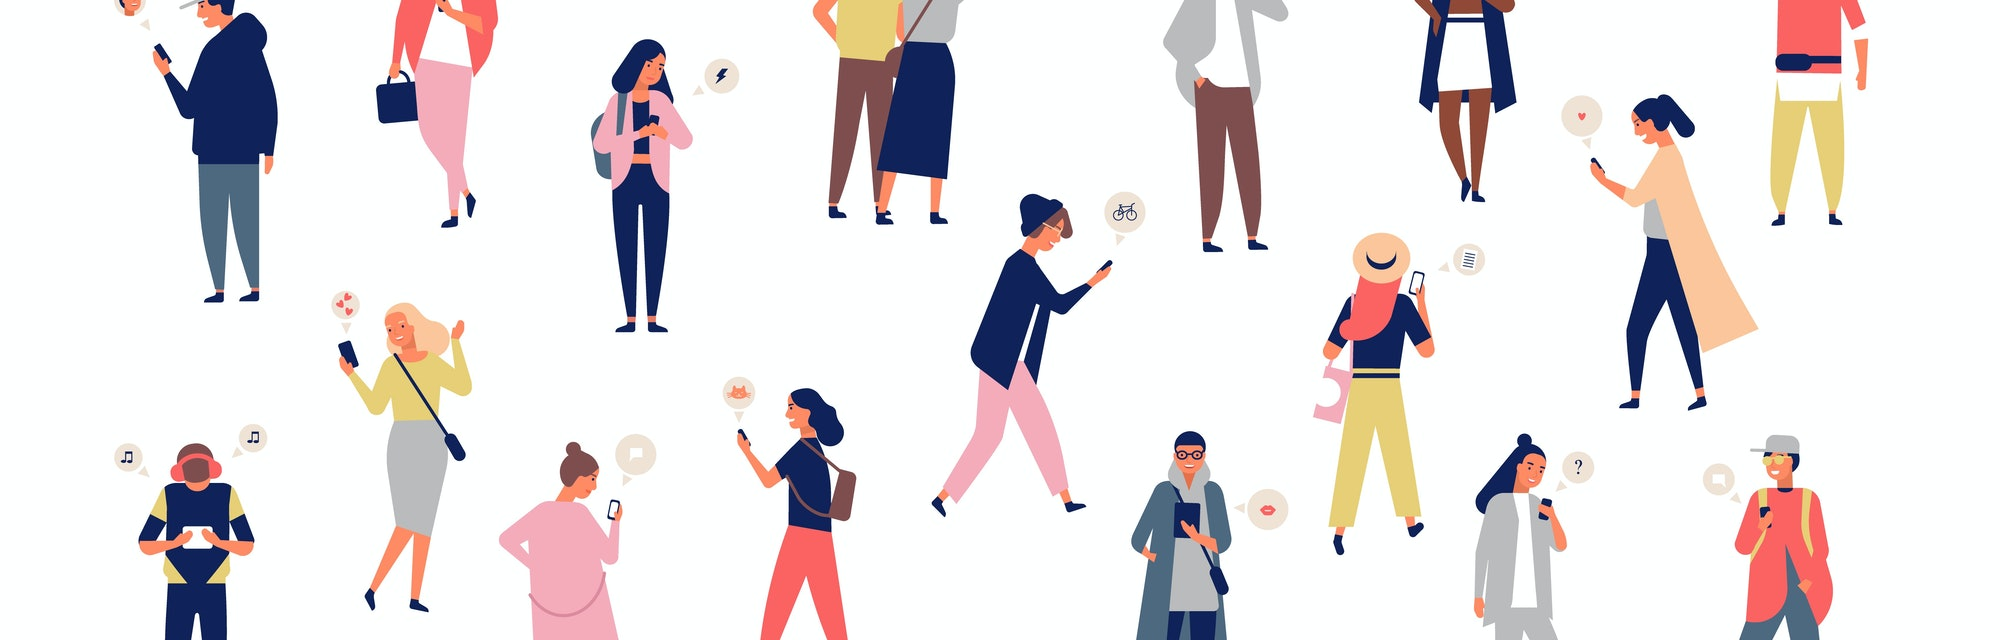 Crowd of young men and women holding smartphones and texting, talking, listening to music, taking selfie. Group of male and female cartoon characters with mobile phones. Flat vector illustration